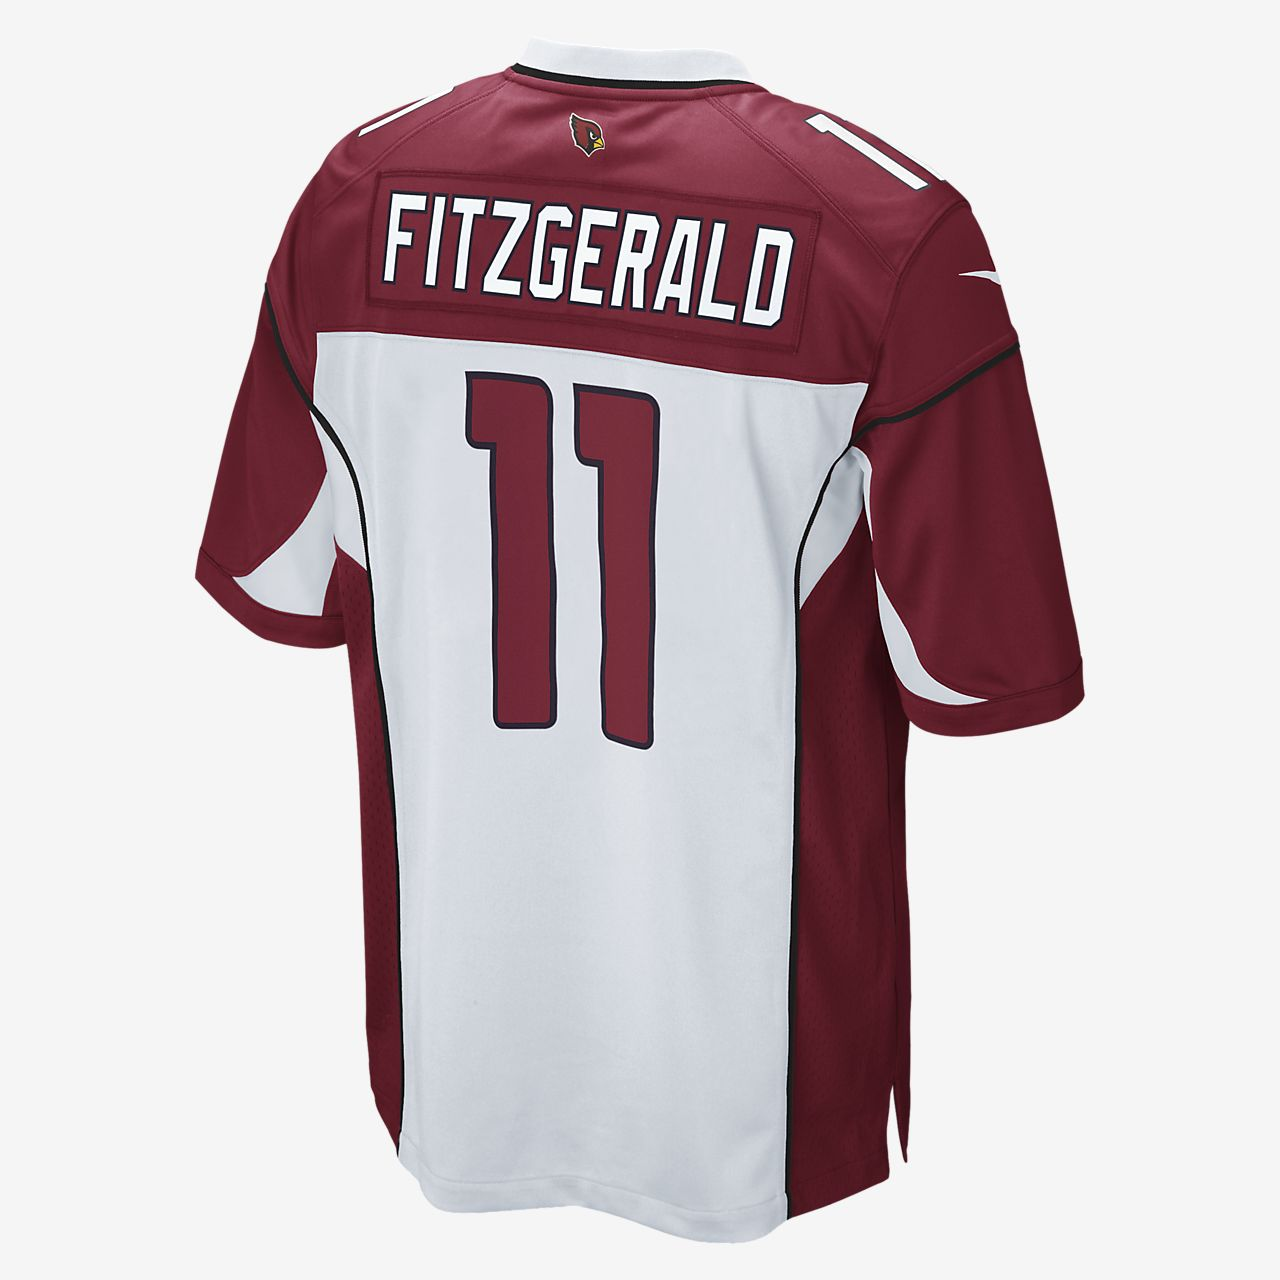 boys larry fitzgerald jersey Cheaper Than Retail Price> Buy ...